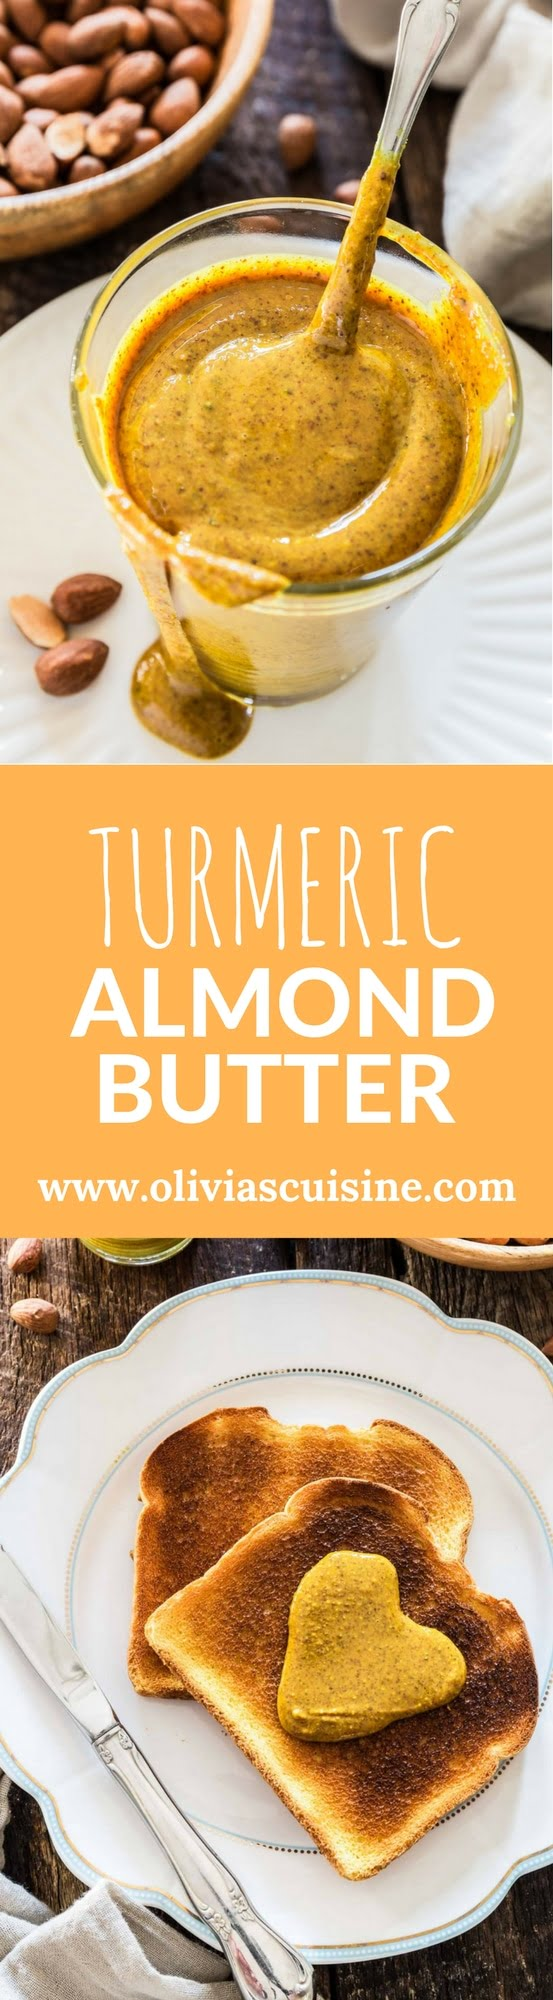 Turmeric Almond Butter | www.oliviascuisine.com | Nut butter lovers, rejoice! This almond butter mixed with turmeric is everything you're looking for: creamy, salty and good for you, loaded with health benefits from both the almonds and the turmeric.